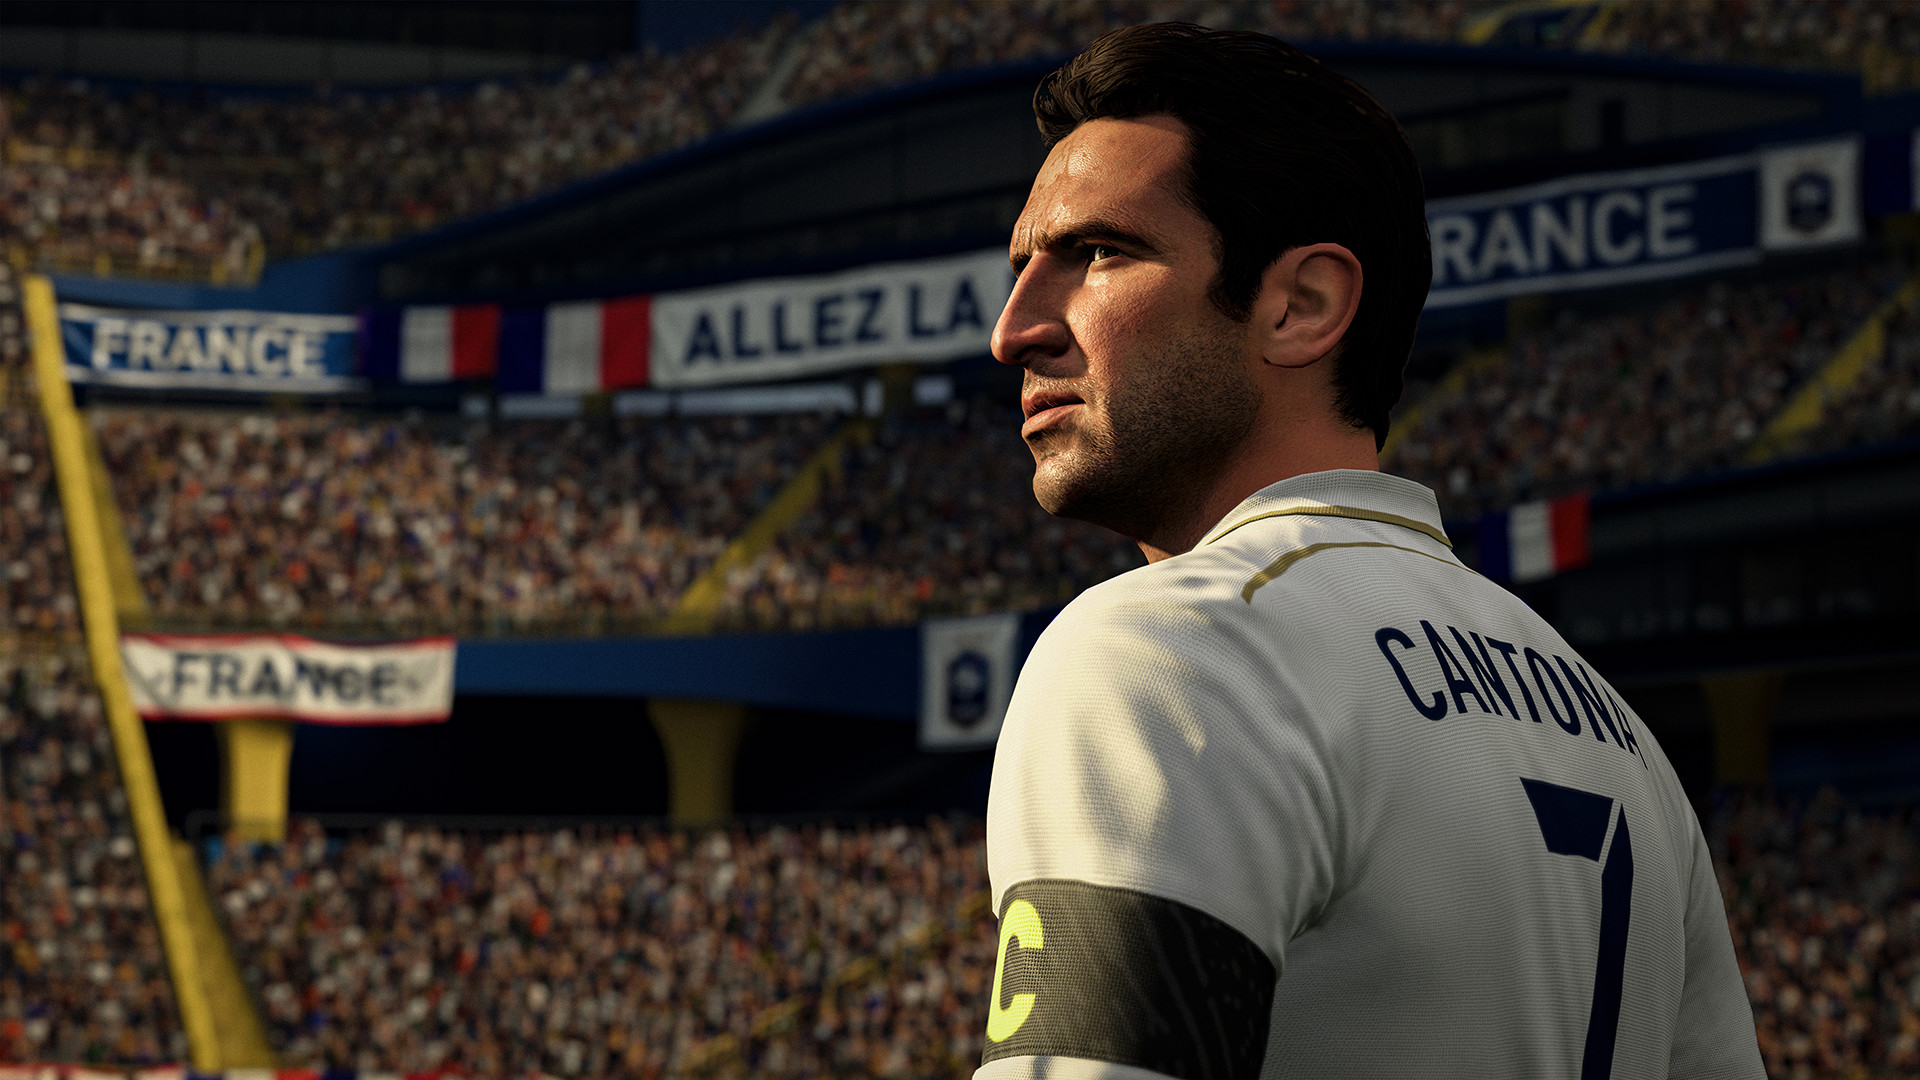 FIFA 21 adds input overlay options in latest patch